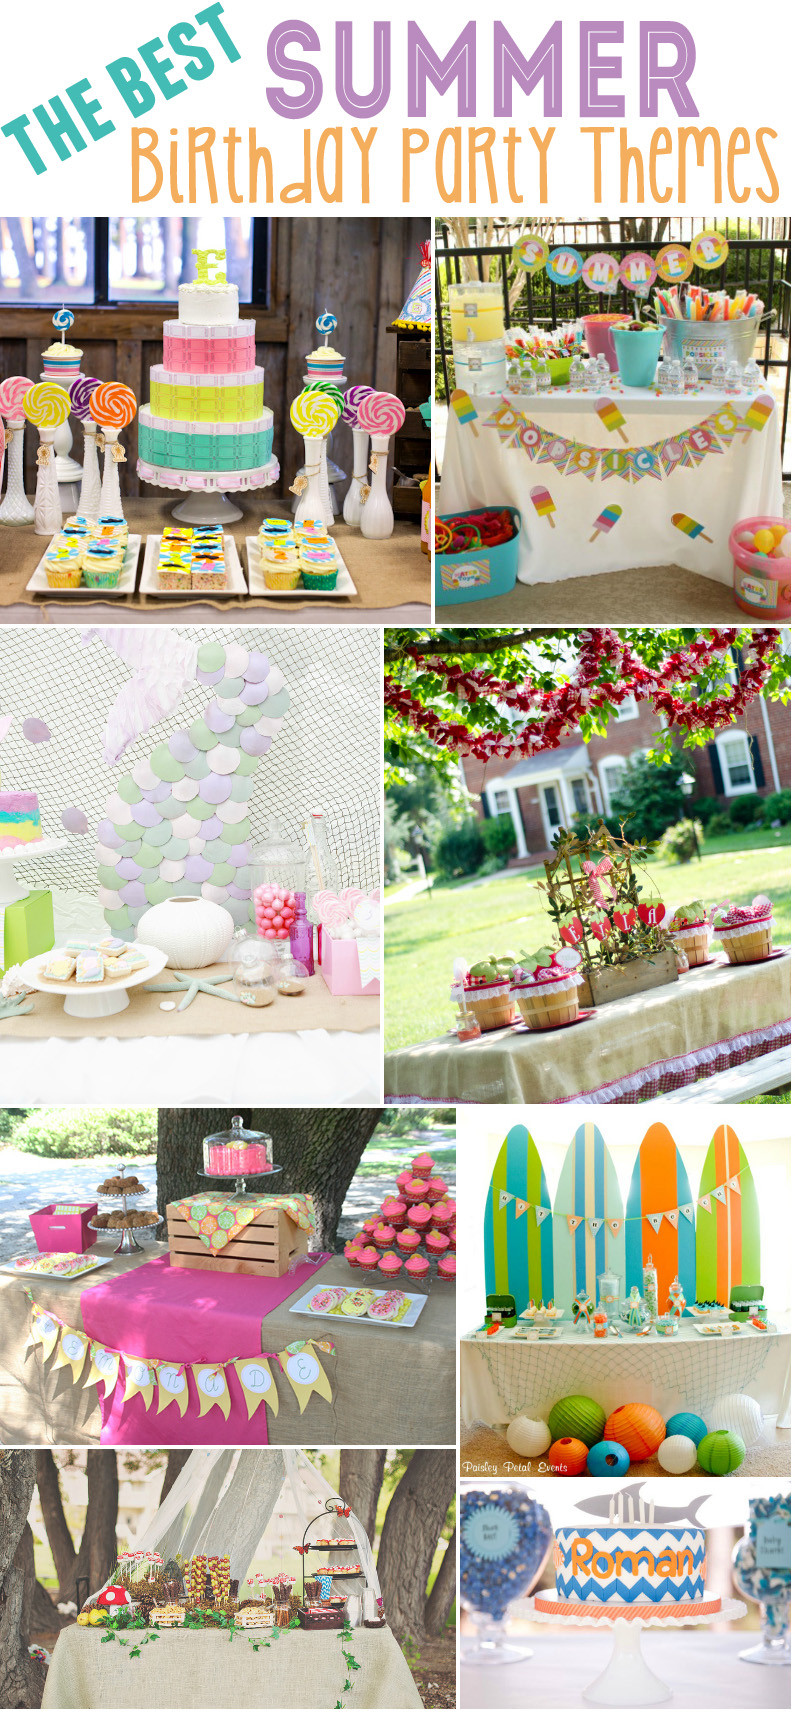 Best ideas about Best Birthday Party Ideas . Save or Pin 15 Best Summer Birthday Party Themes Design Dazzle Now.